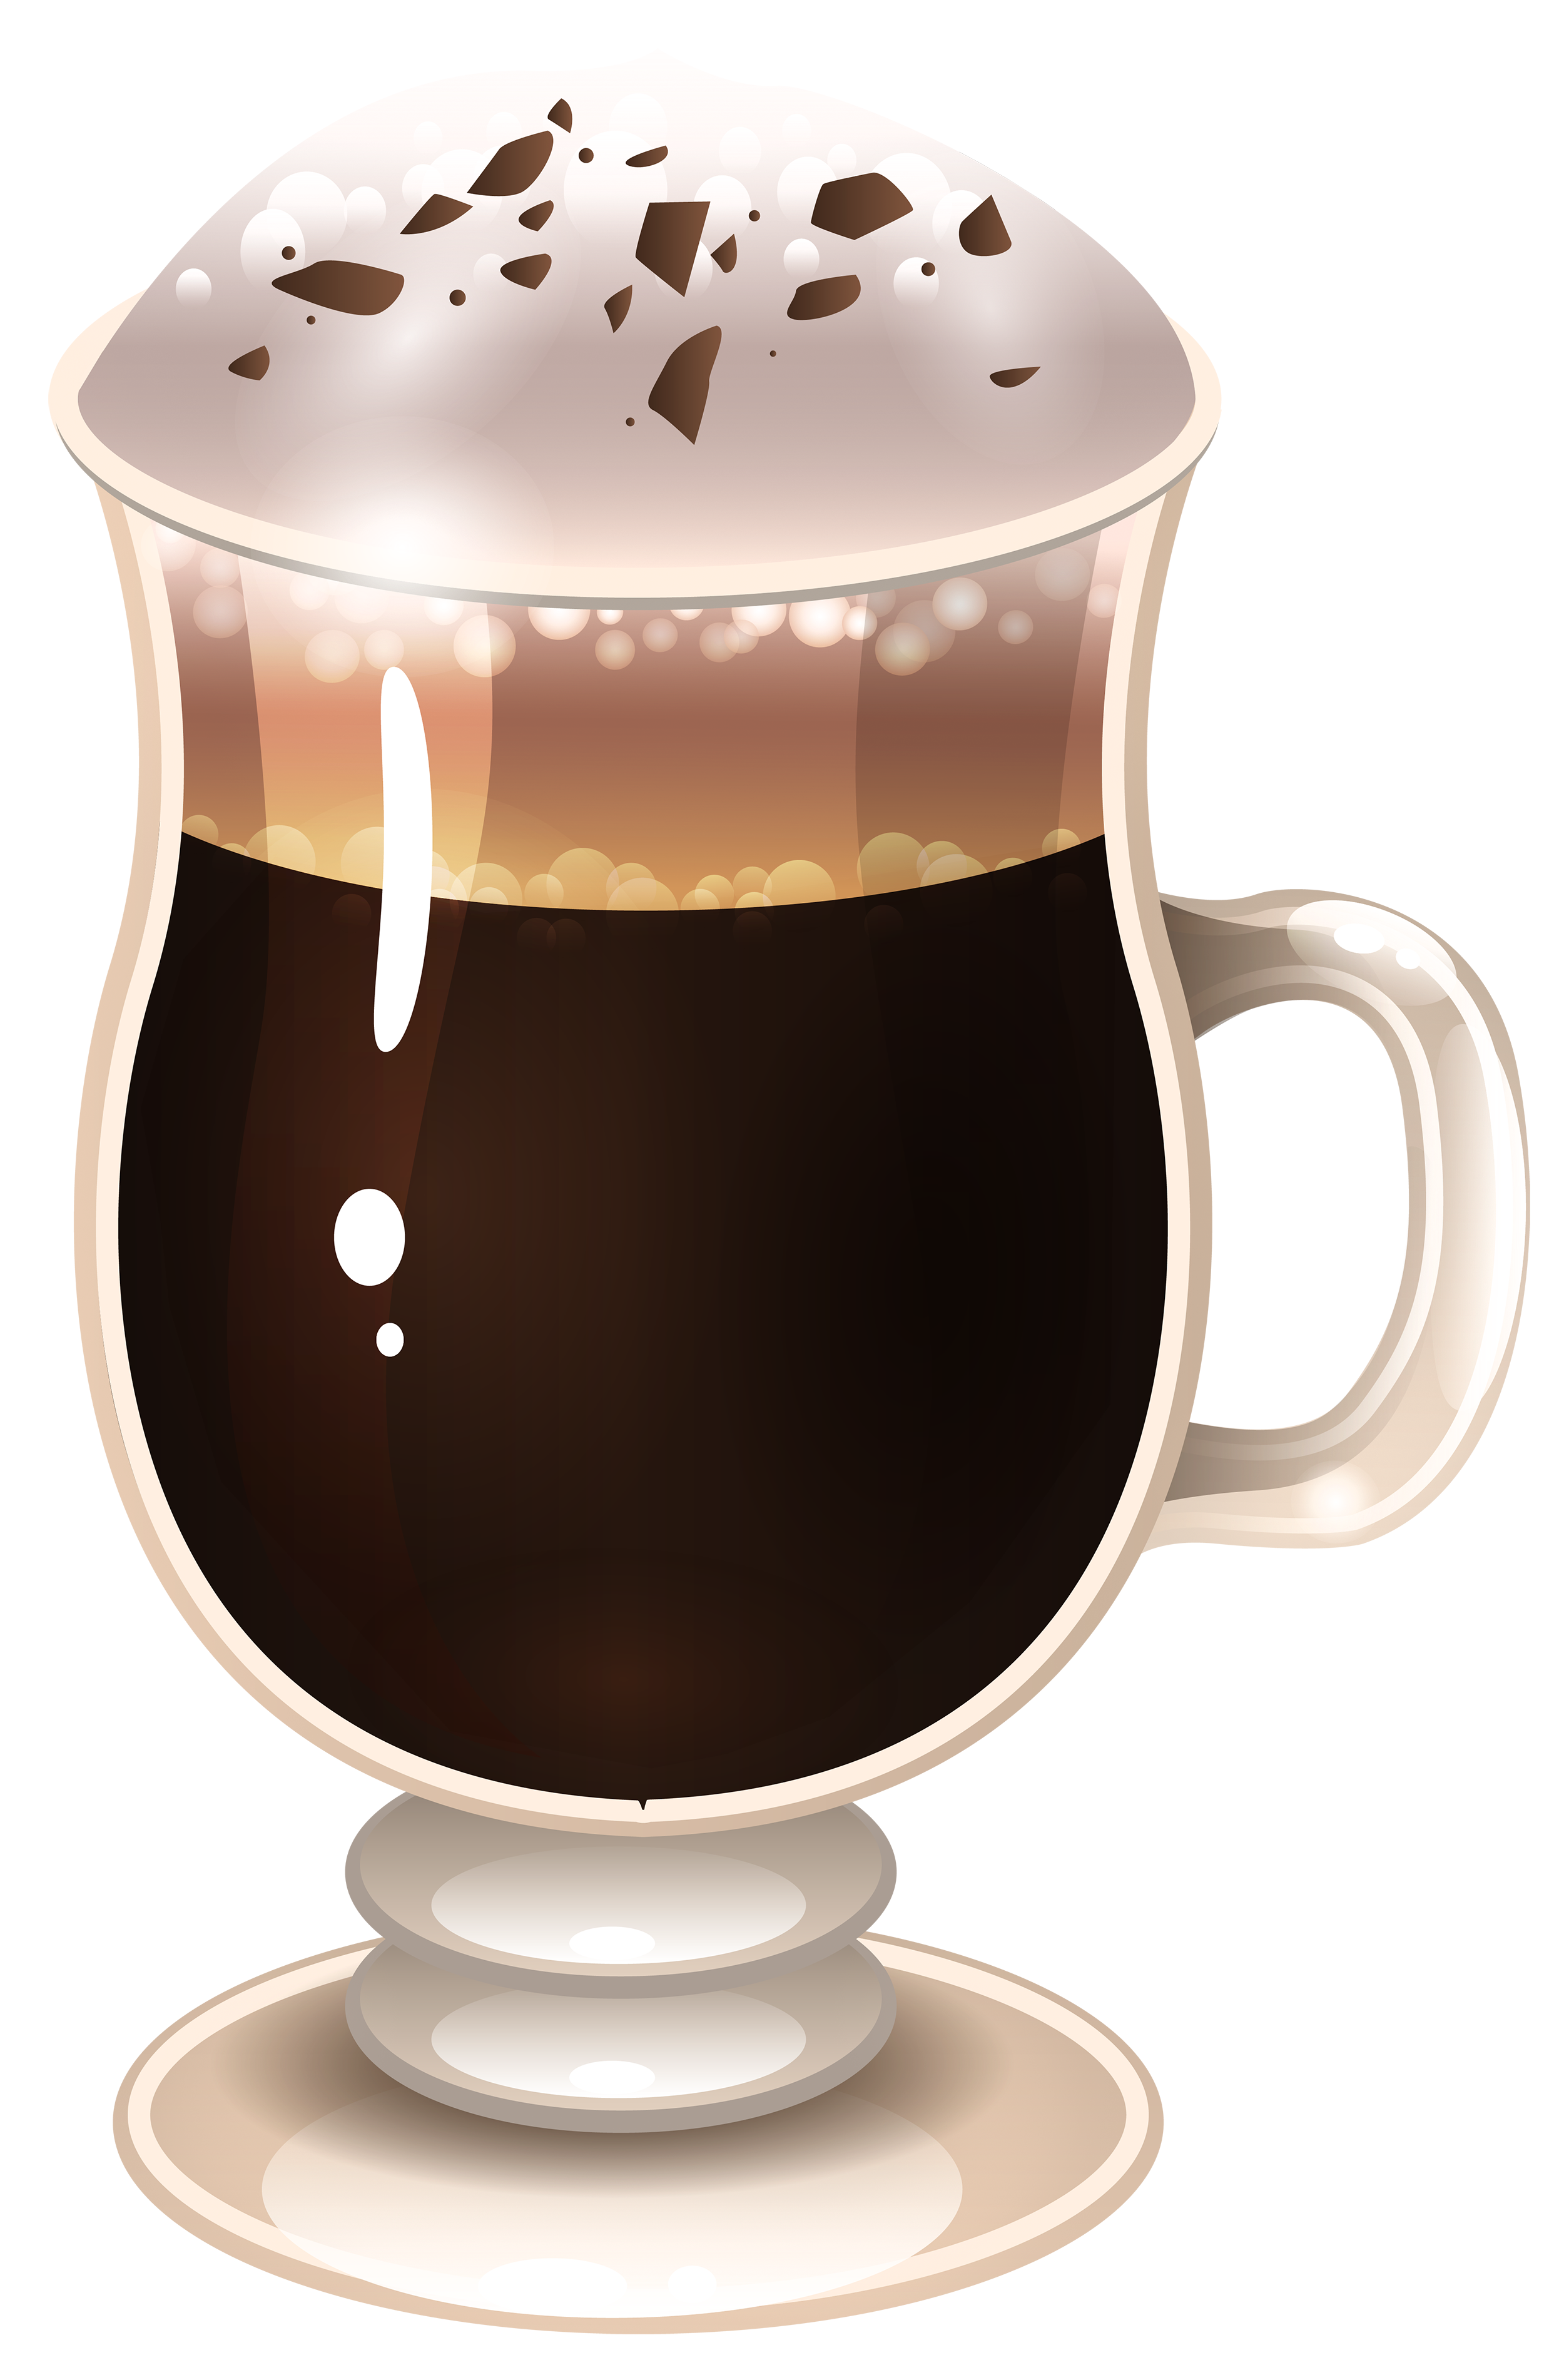 Png image gallery yopriceville. Clipart coffee latte